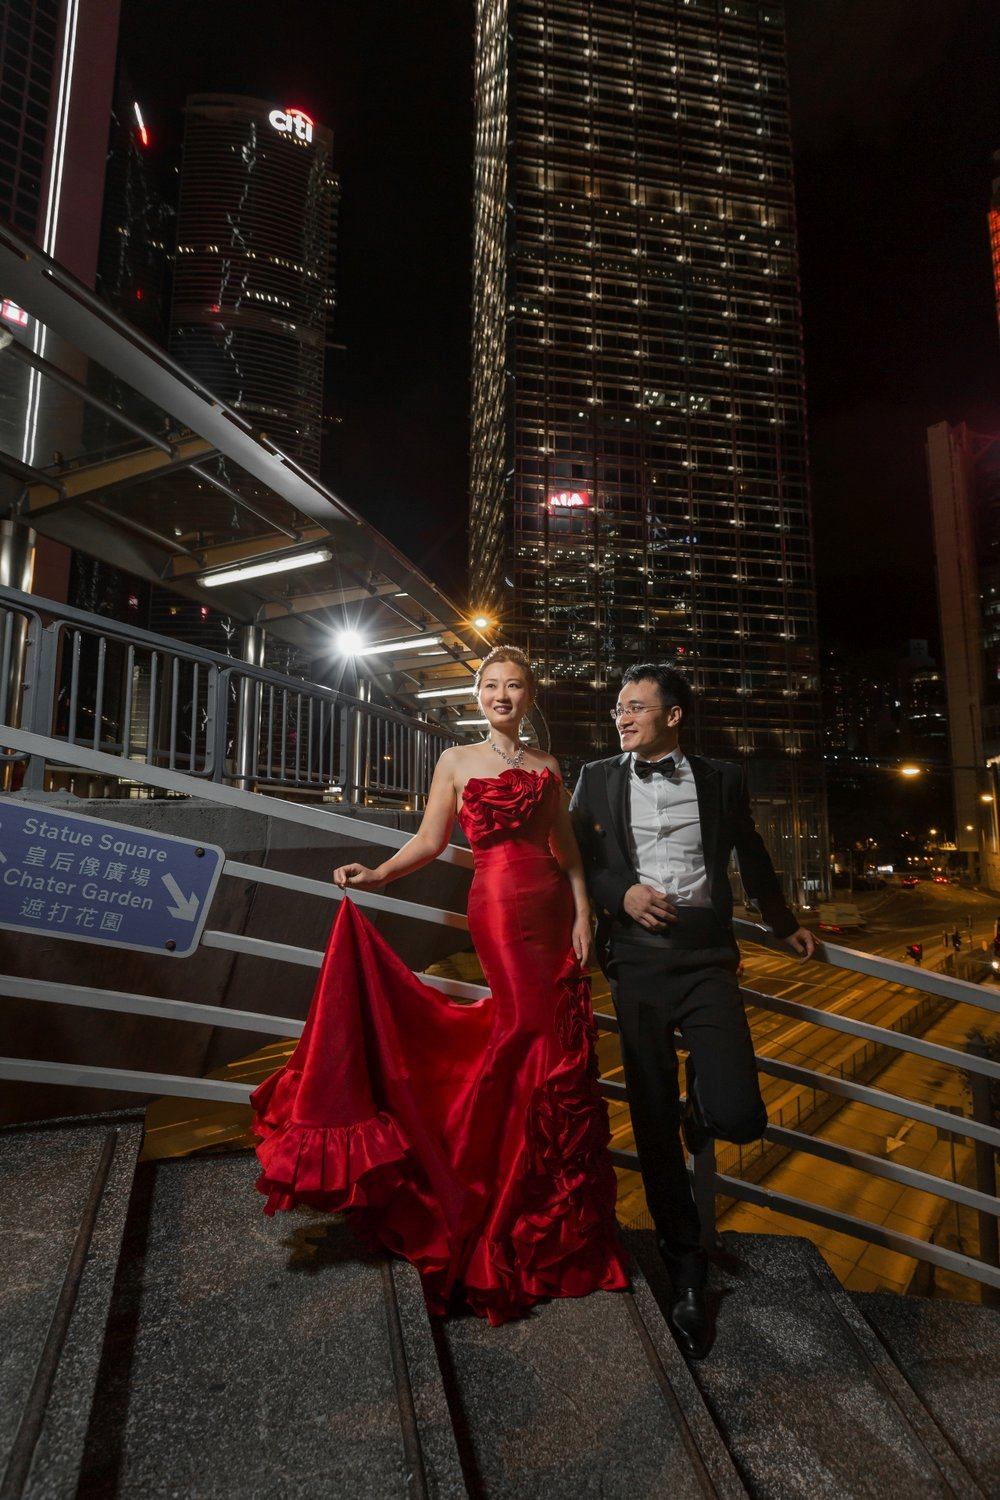 Hong Kong Prewedding - Central Night Scene